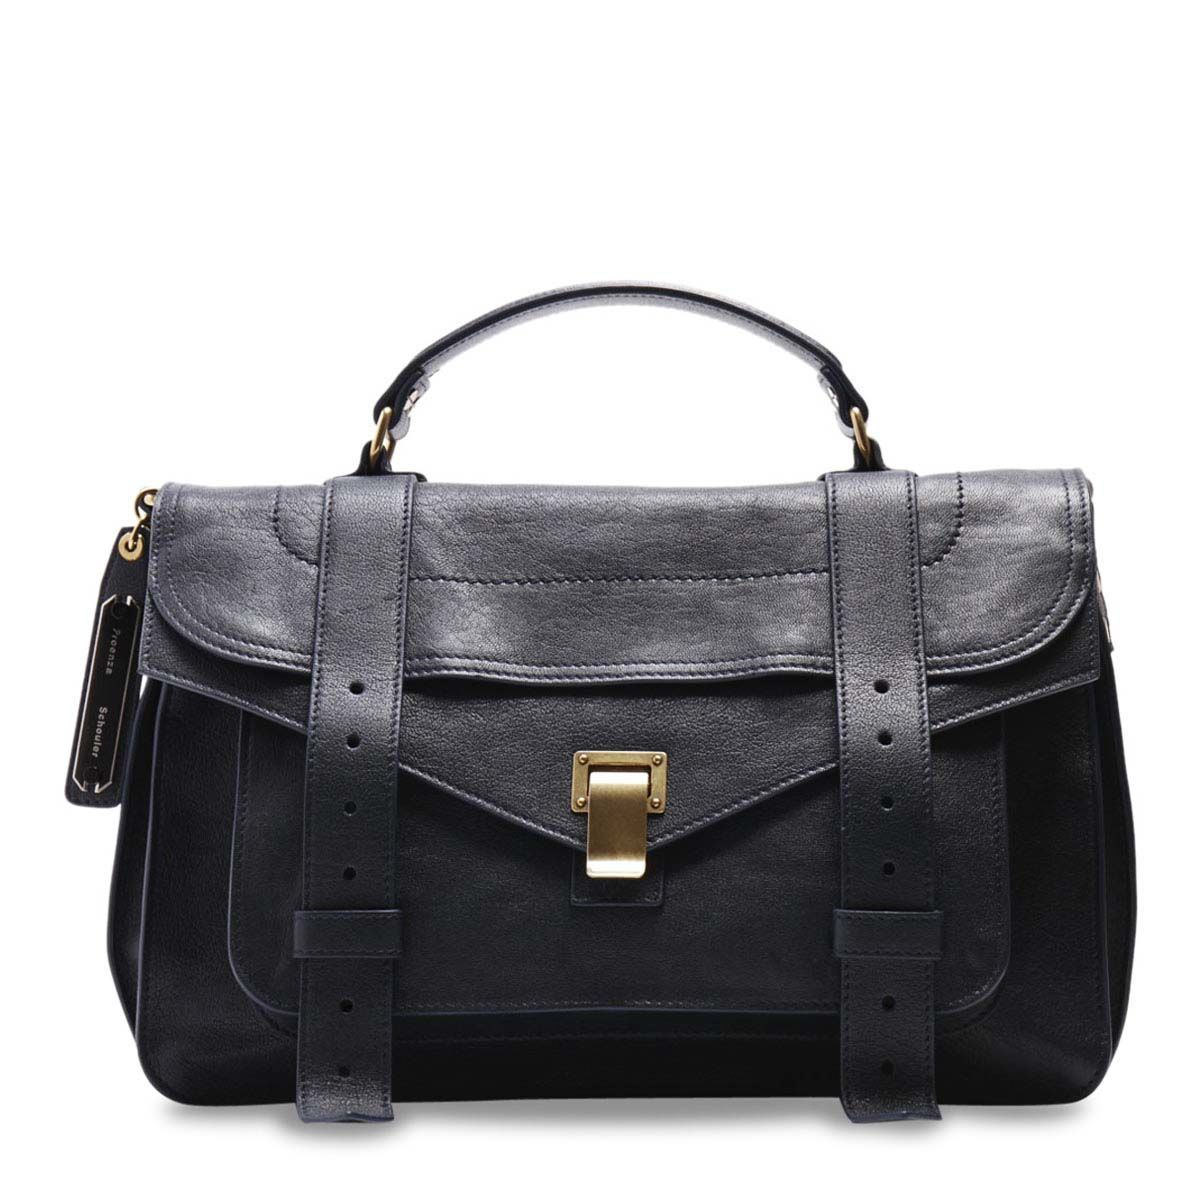 Proenza Schouler Medium Lux Satchel